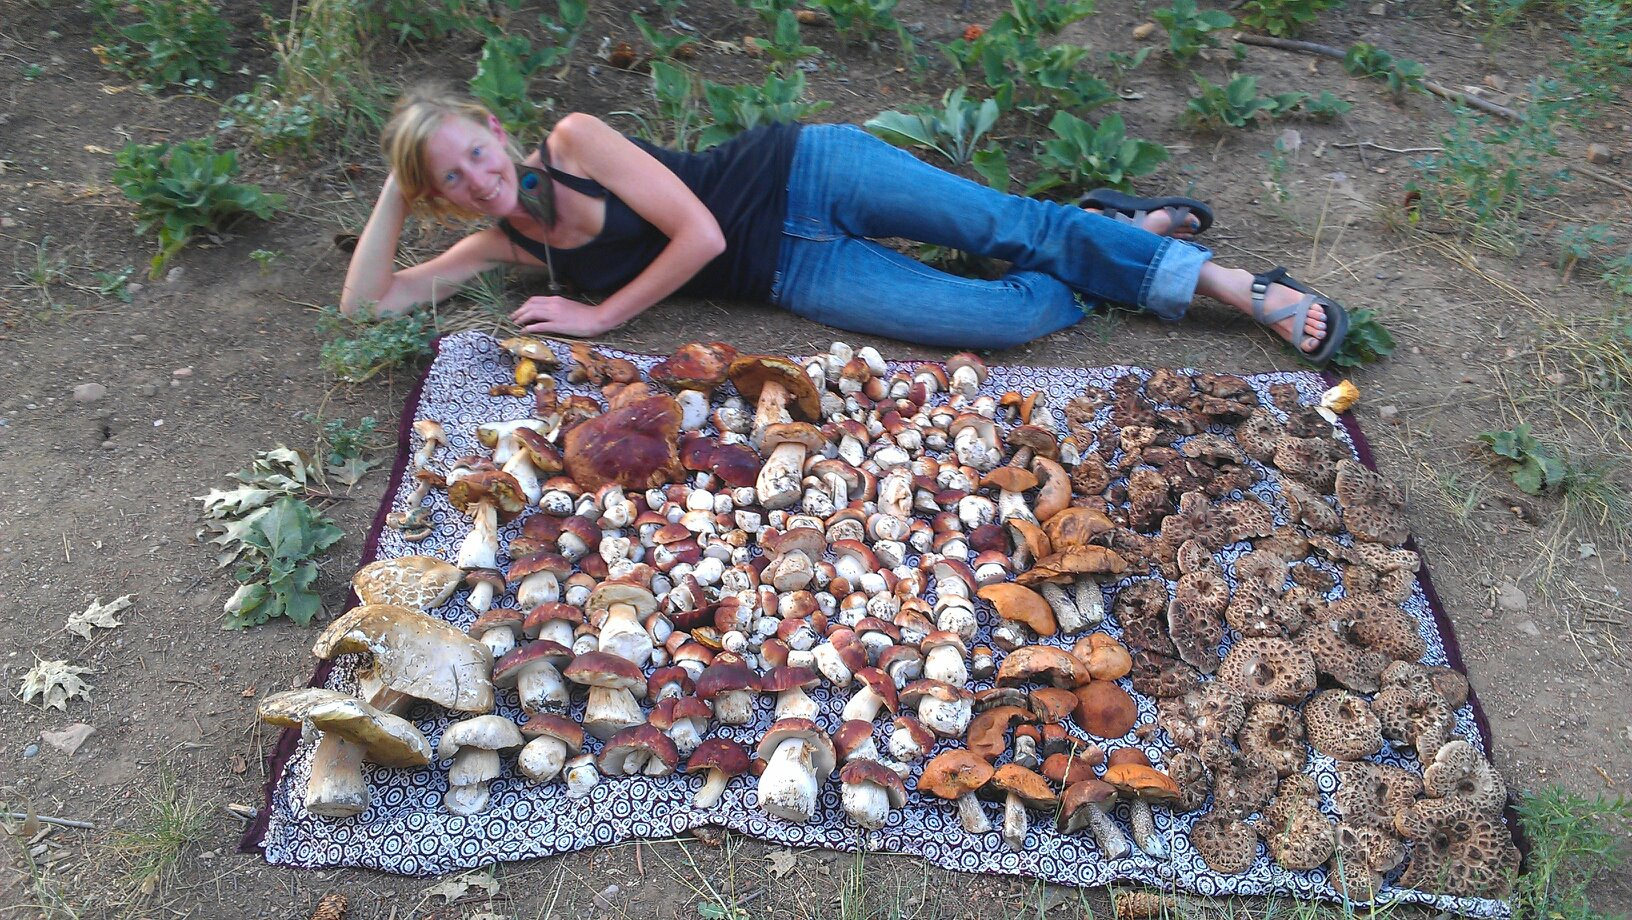 Wild about mushrooms...